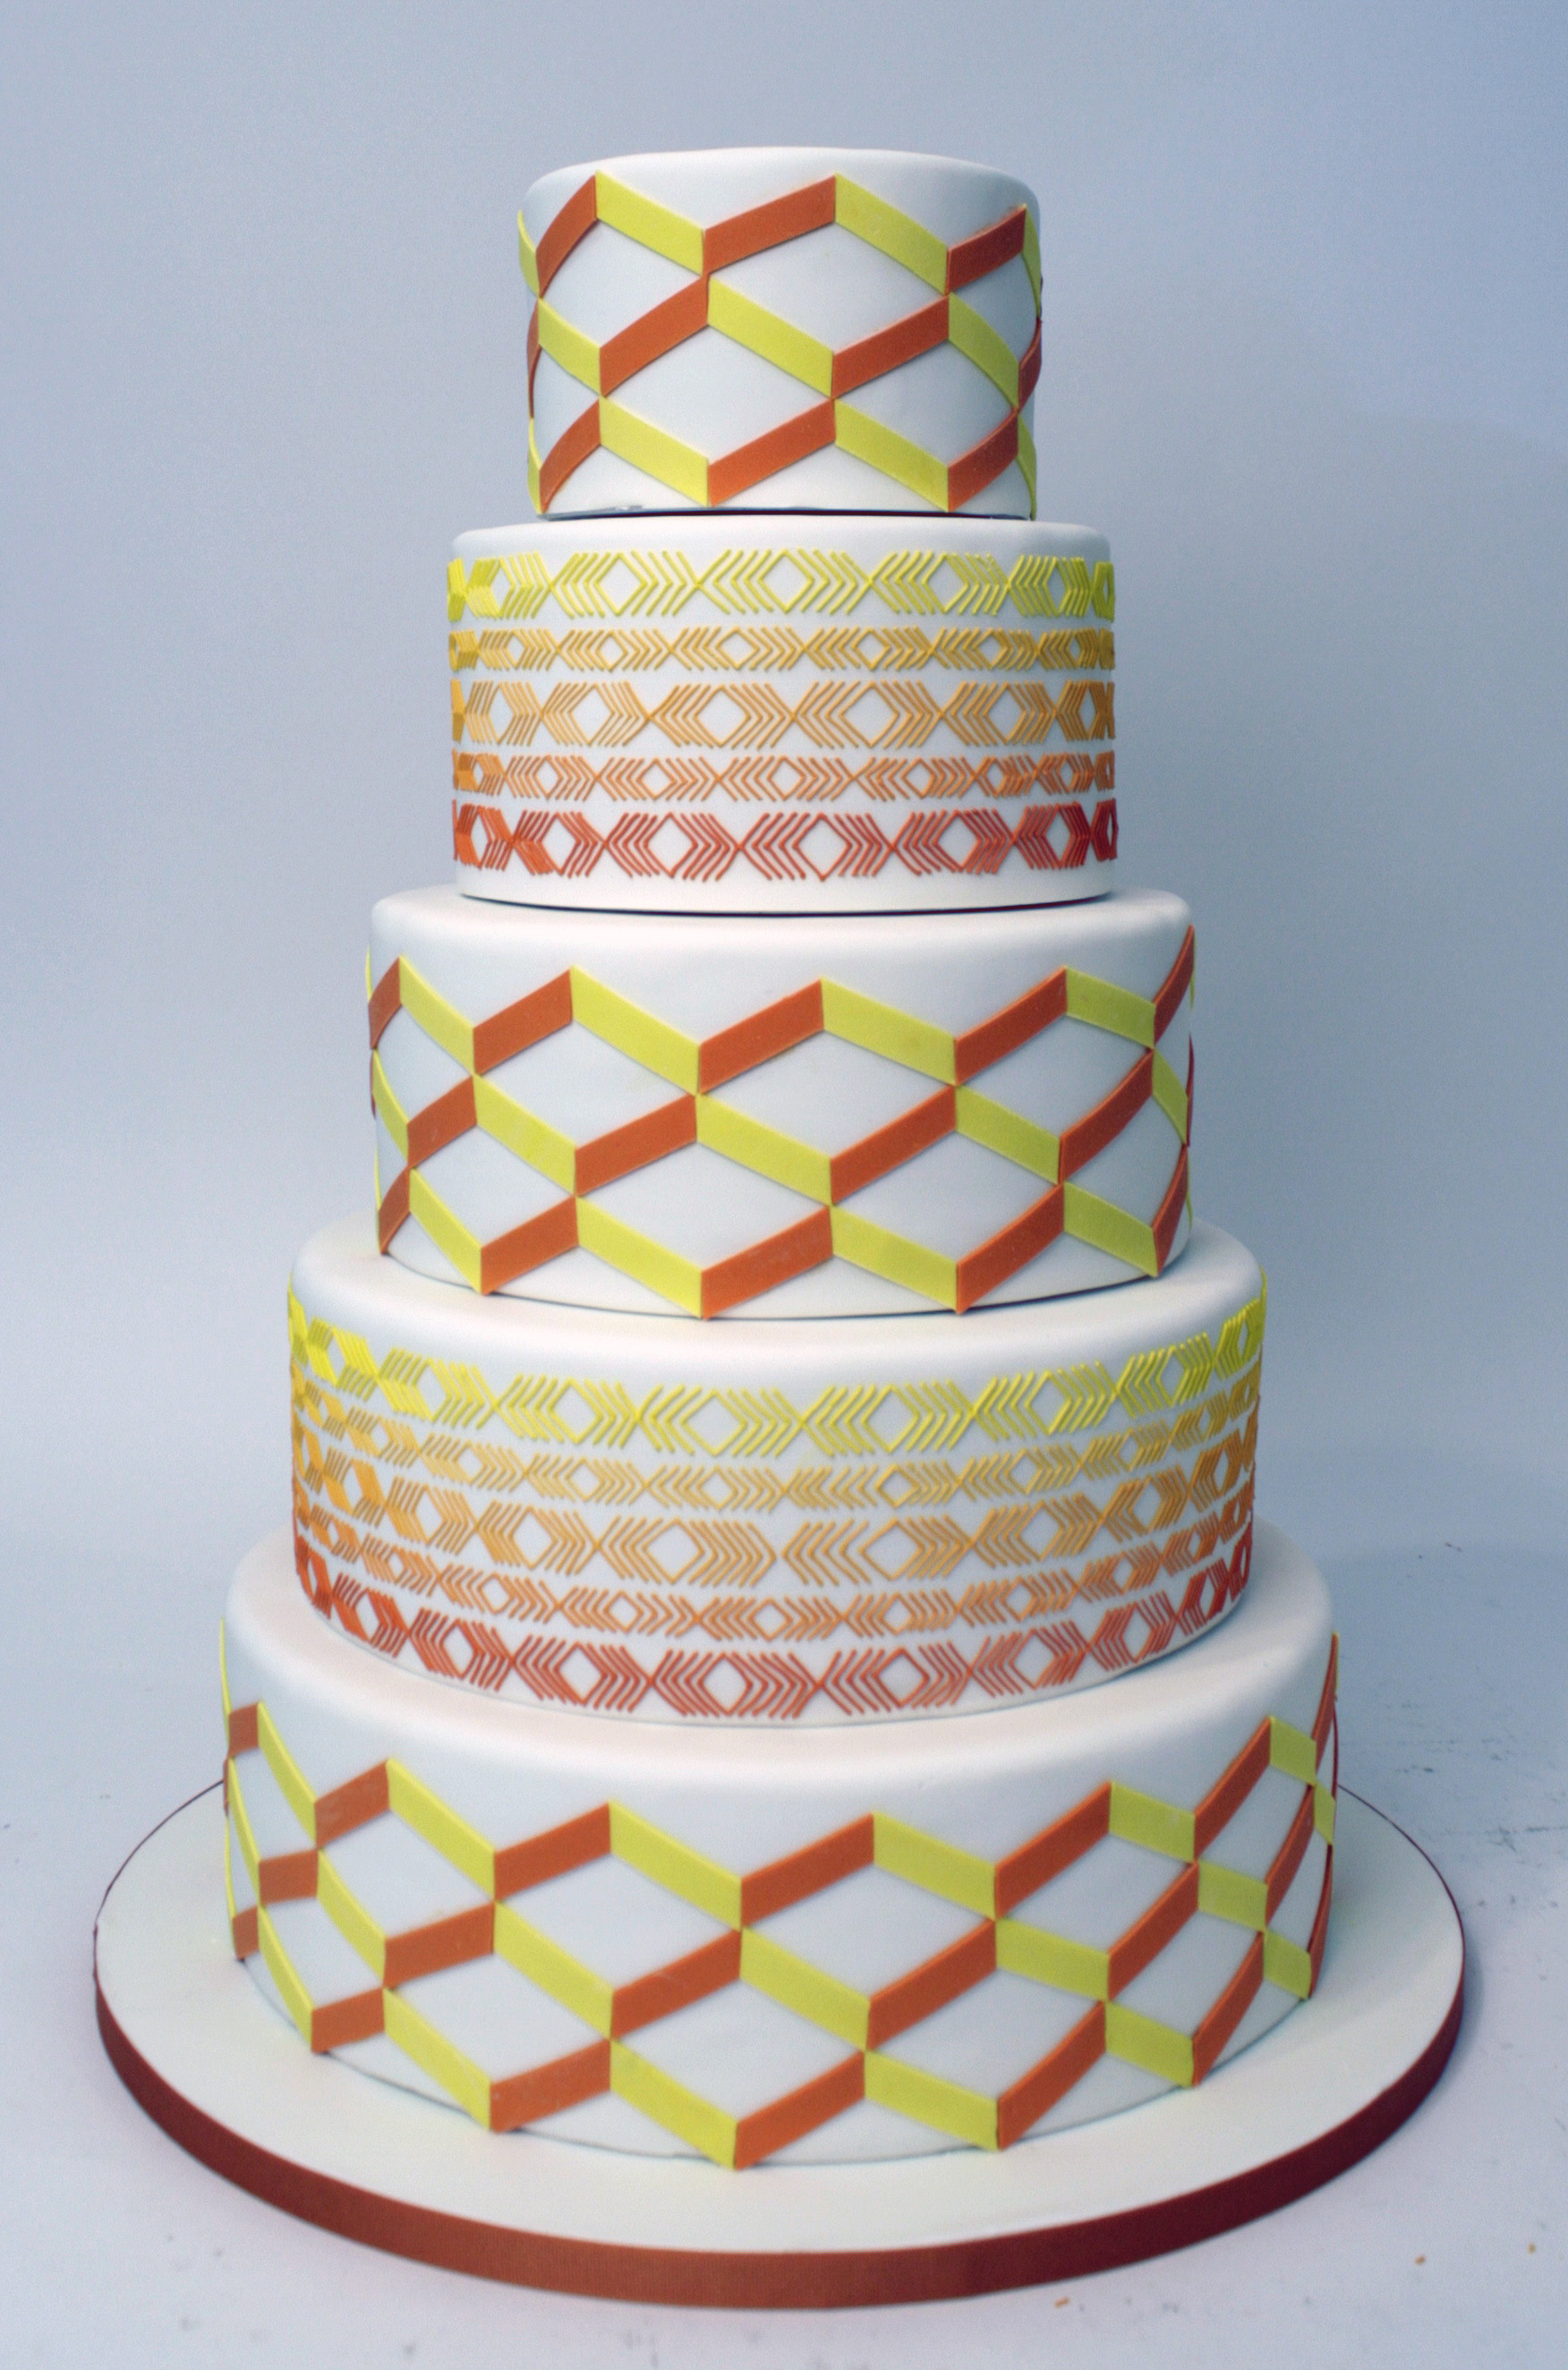 The Art to Cake Design for Your Baltimore Wedding   Partyspace The Art to Cake Design for Your Baltimore Wedding